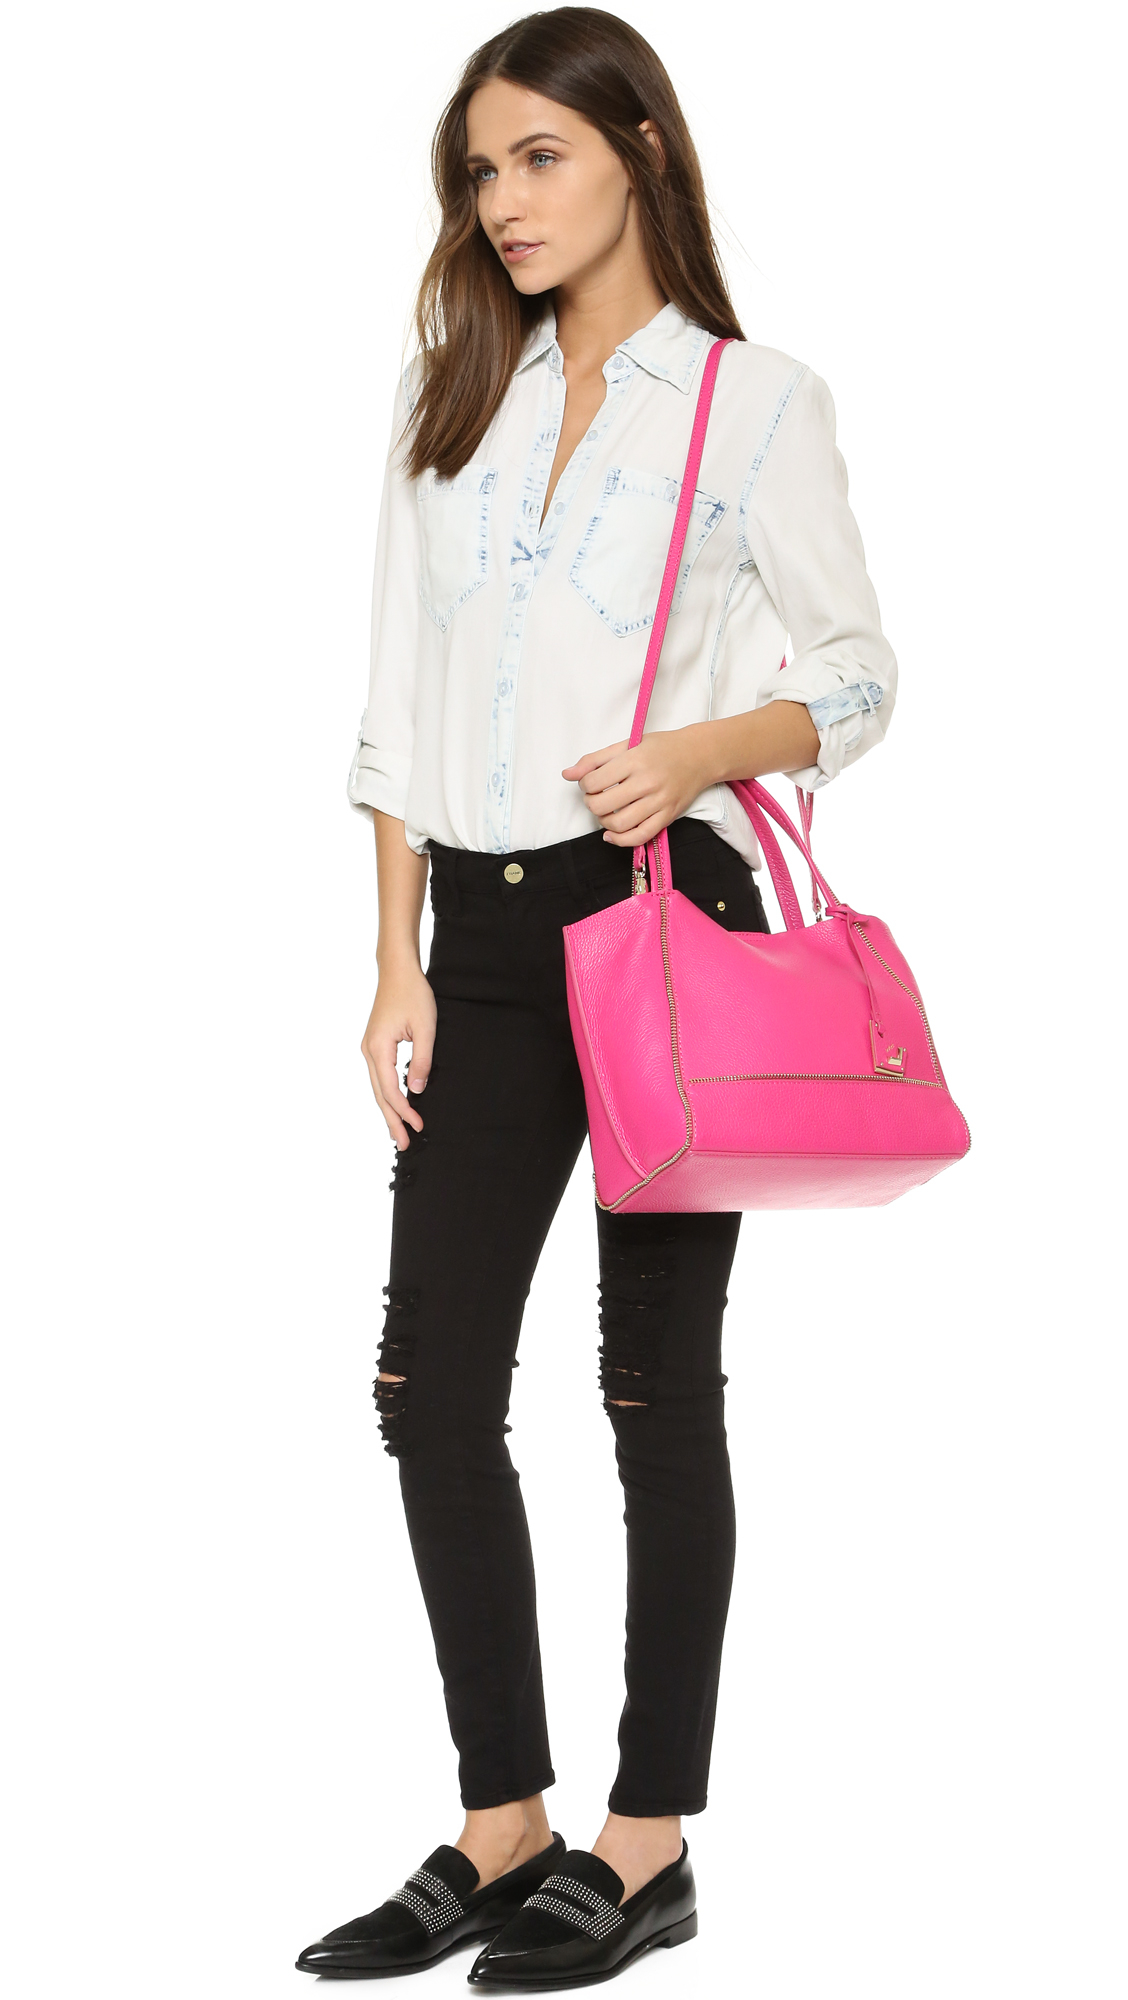 477301d06 Botkier Bite Size Soho Tote in Pink - Lyst